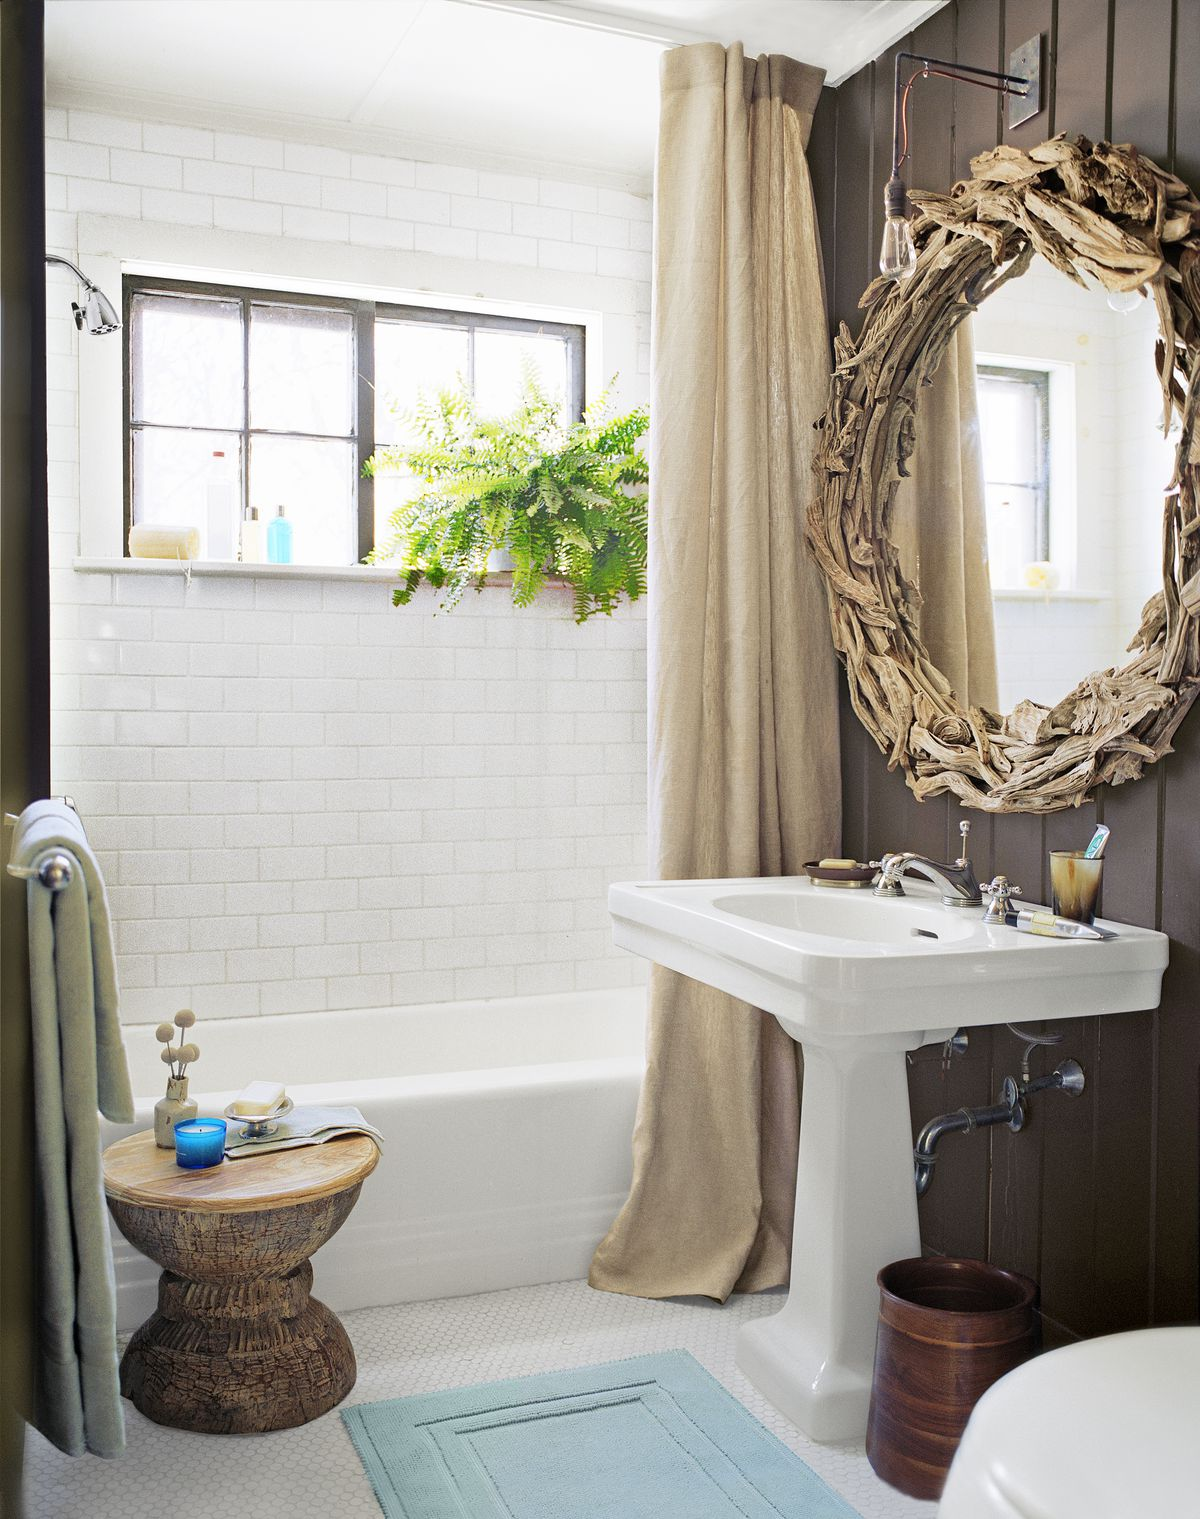 Brown curtain hanging from ceiling in front of bathtub.